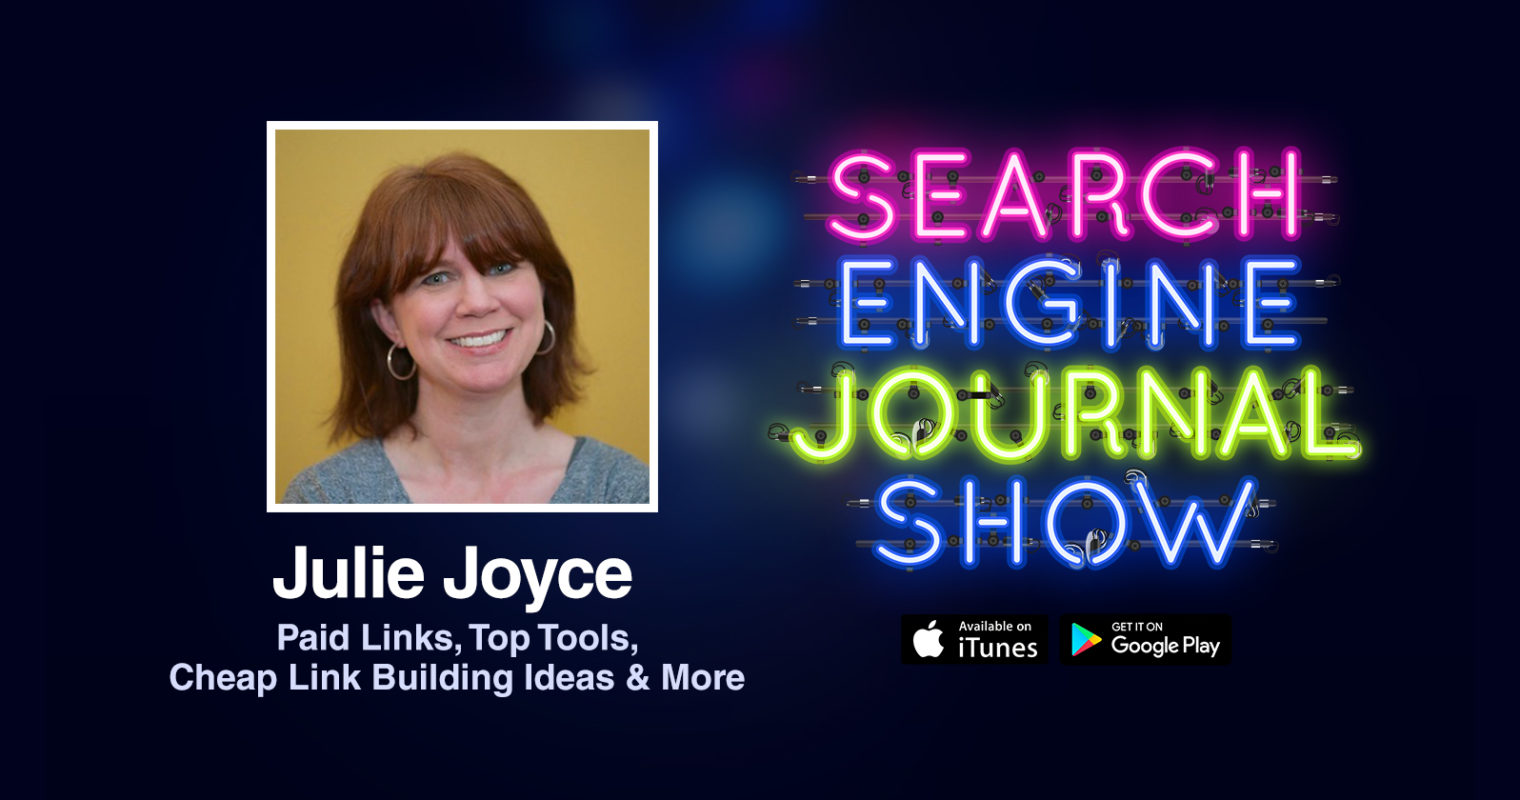 Julie Joyce on Paid Links, Top Tools, Cheap Link Building Ideas & More [PODCAST]